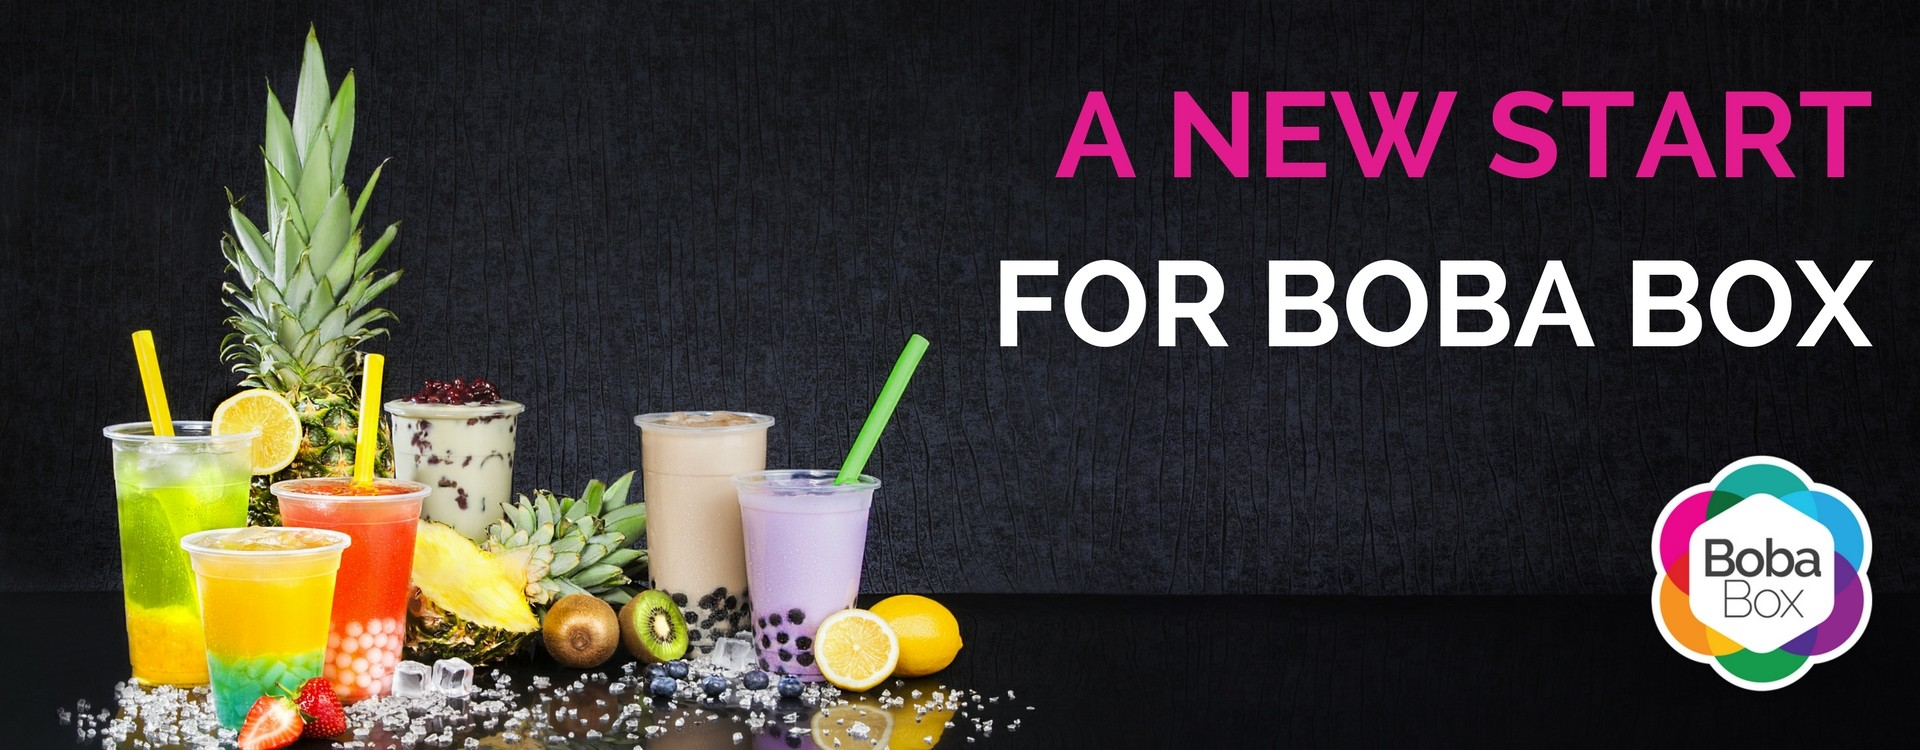 A new start for Boba Box